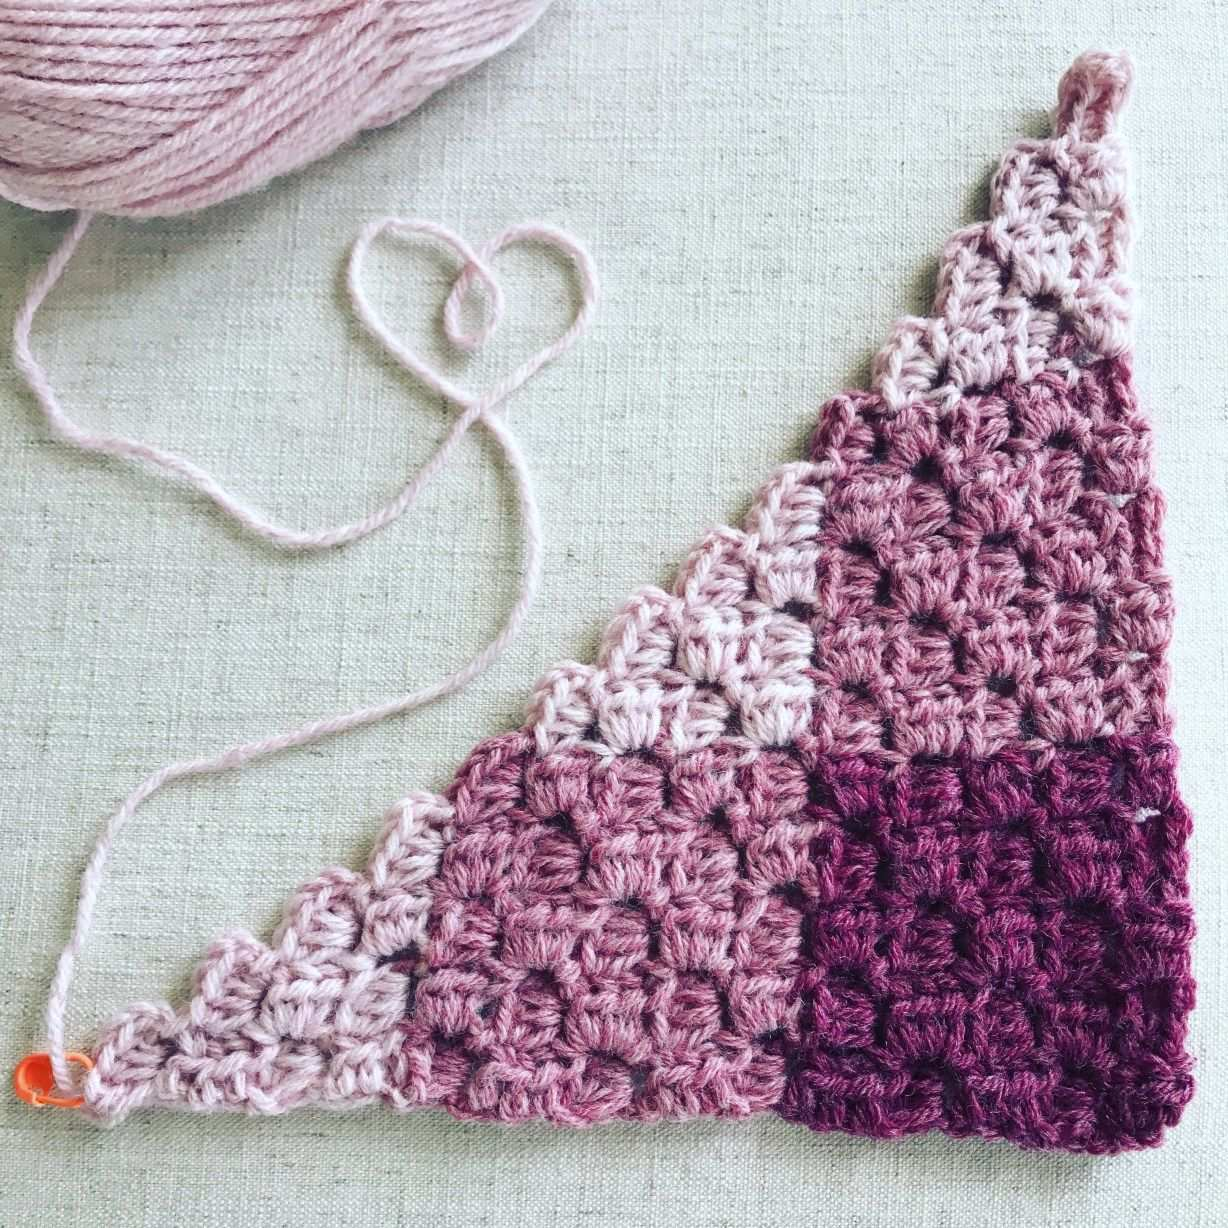 Get A Free Pattern For A Gingham Hdc Corner To Corner C2c Blanket With Chart Armstulpen Hakeln C2c Hakeln Hakeln Muster